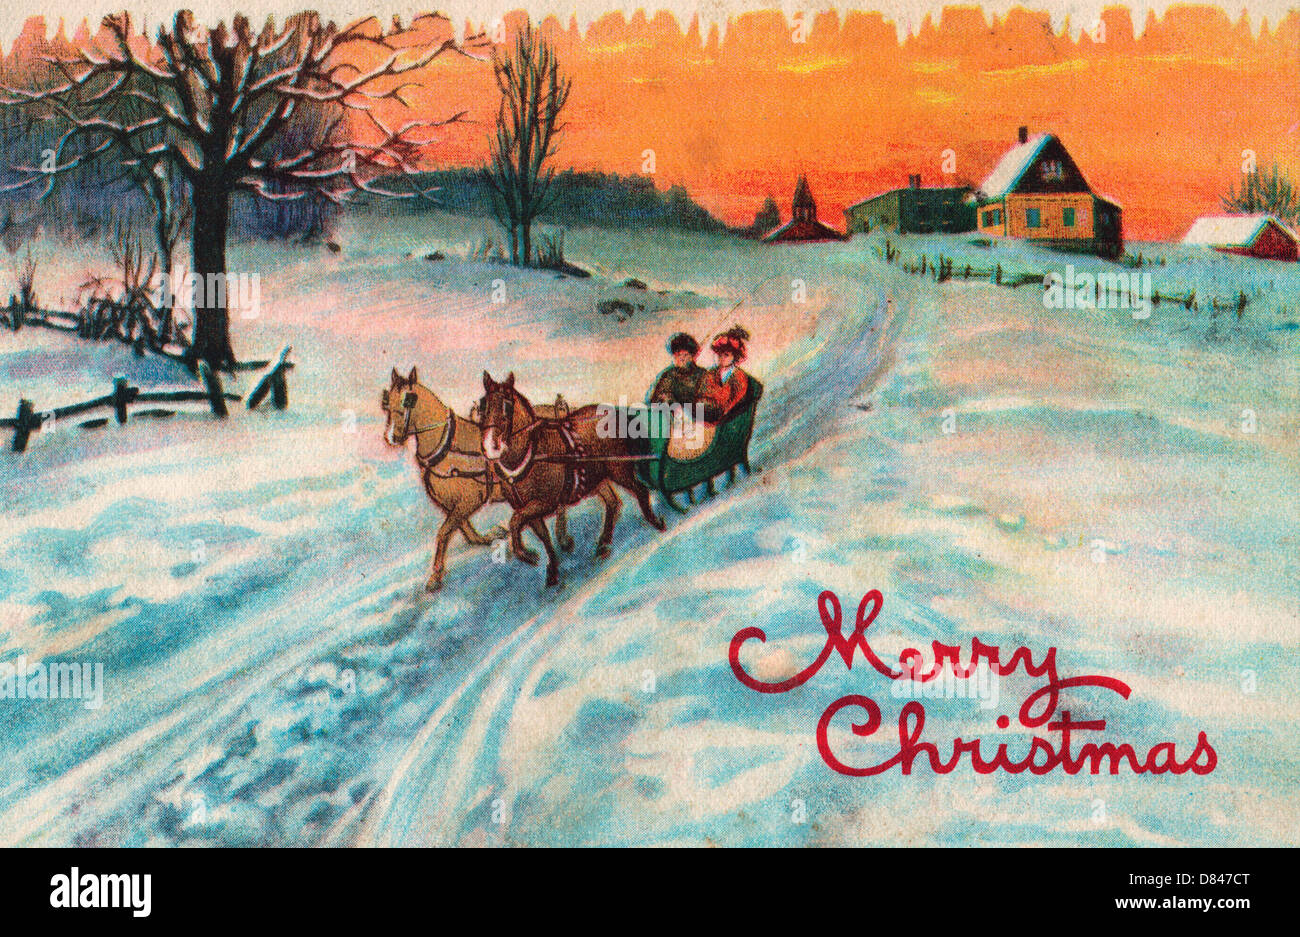 merry christmas vintage card with couple in horse drawn sleigh